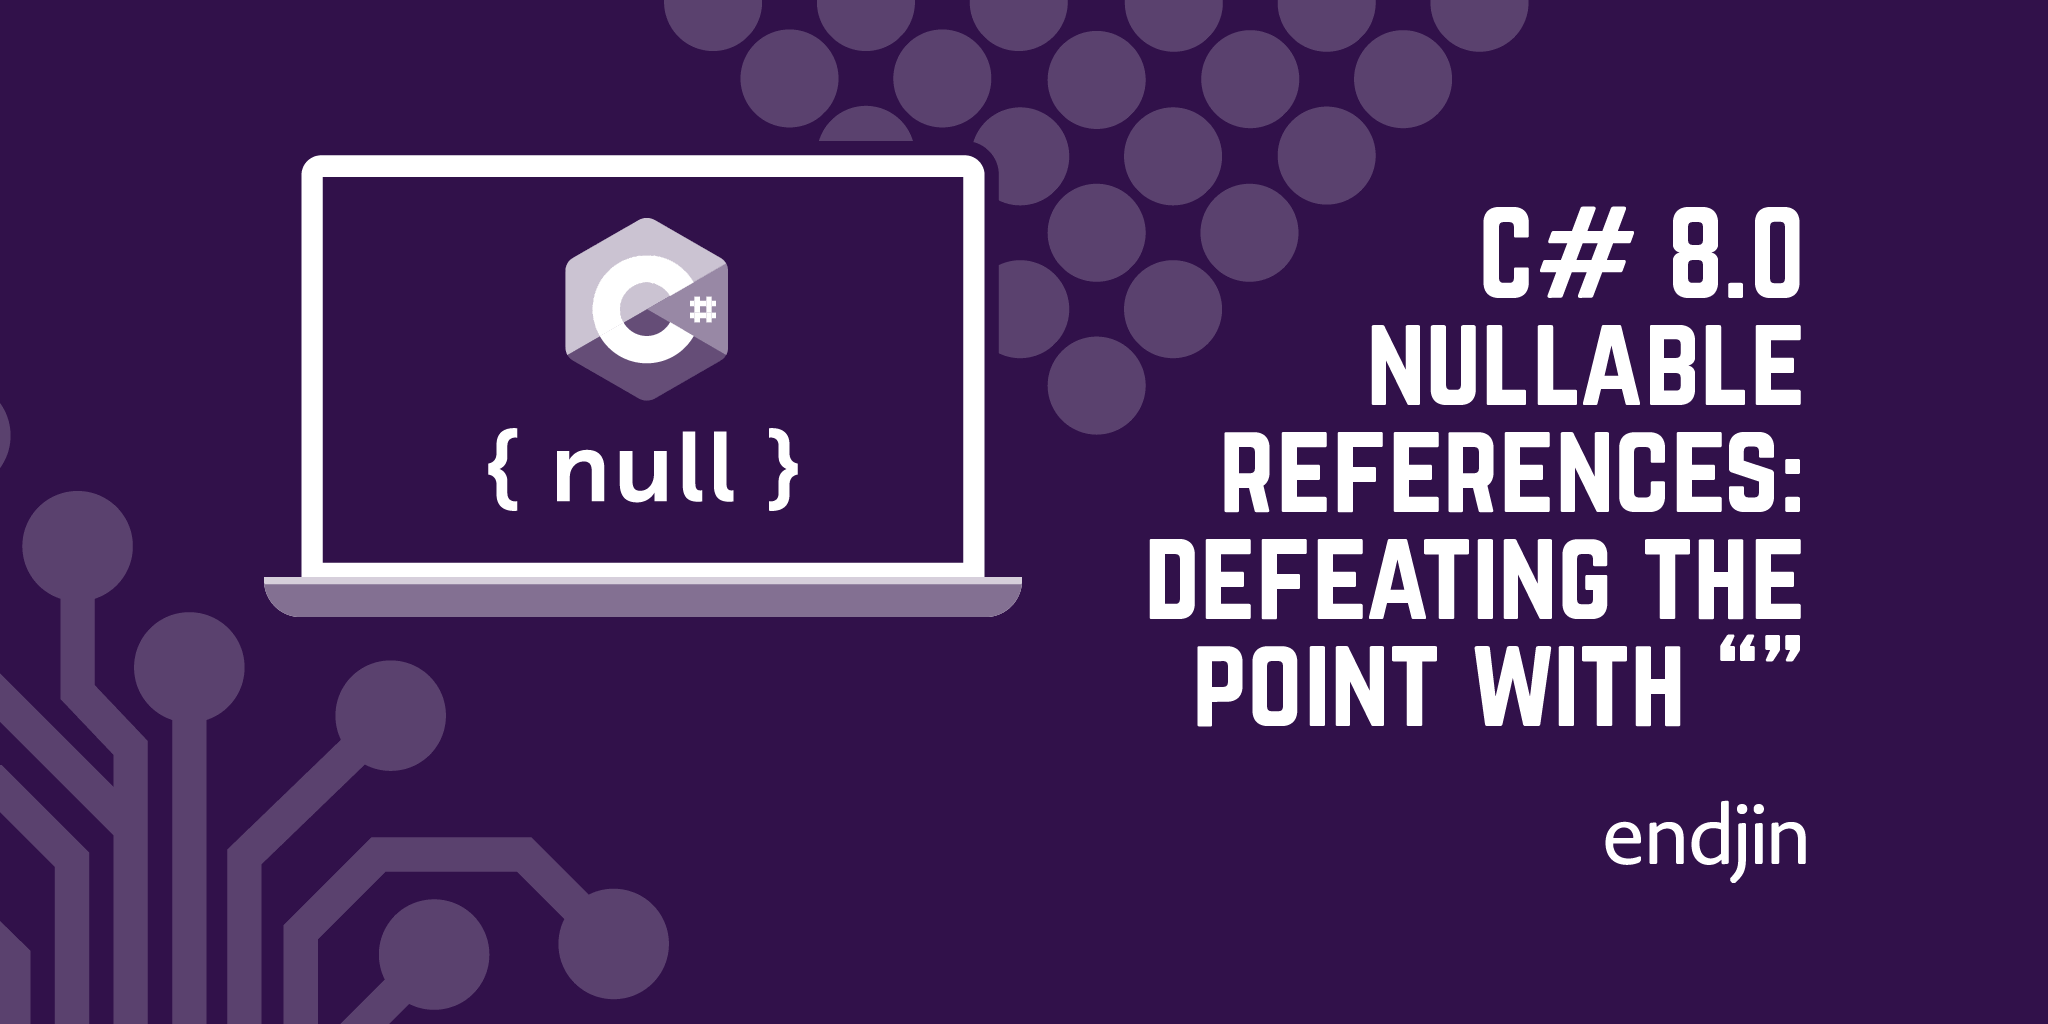 C# 8.0 nullable references: defeating the point with empty strings